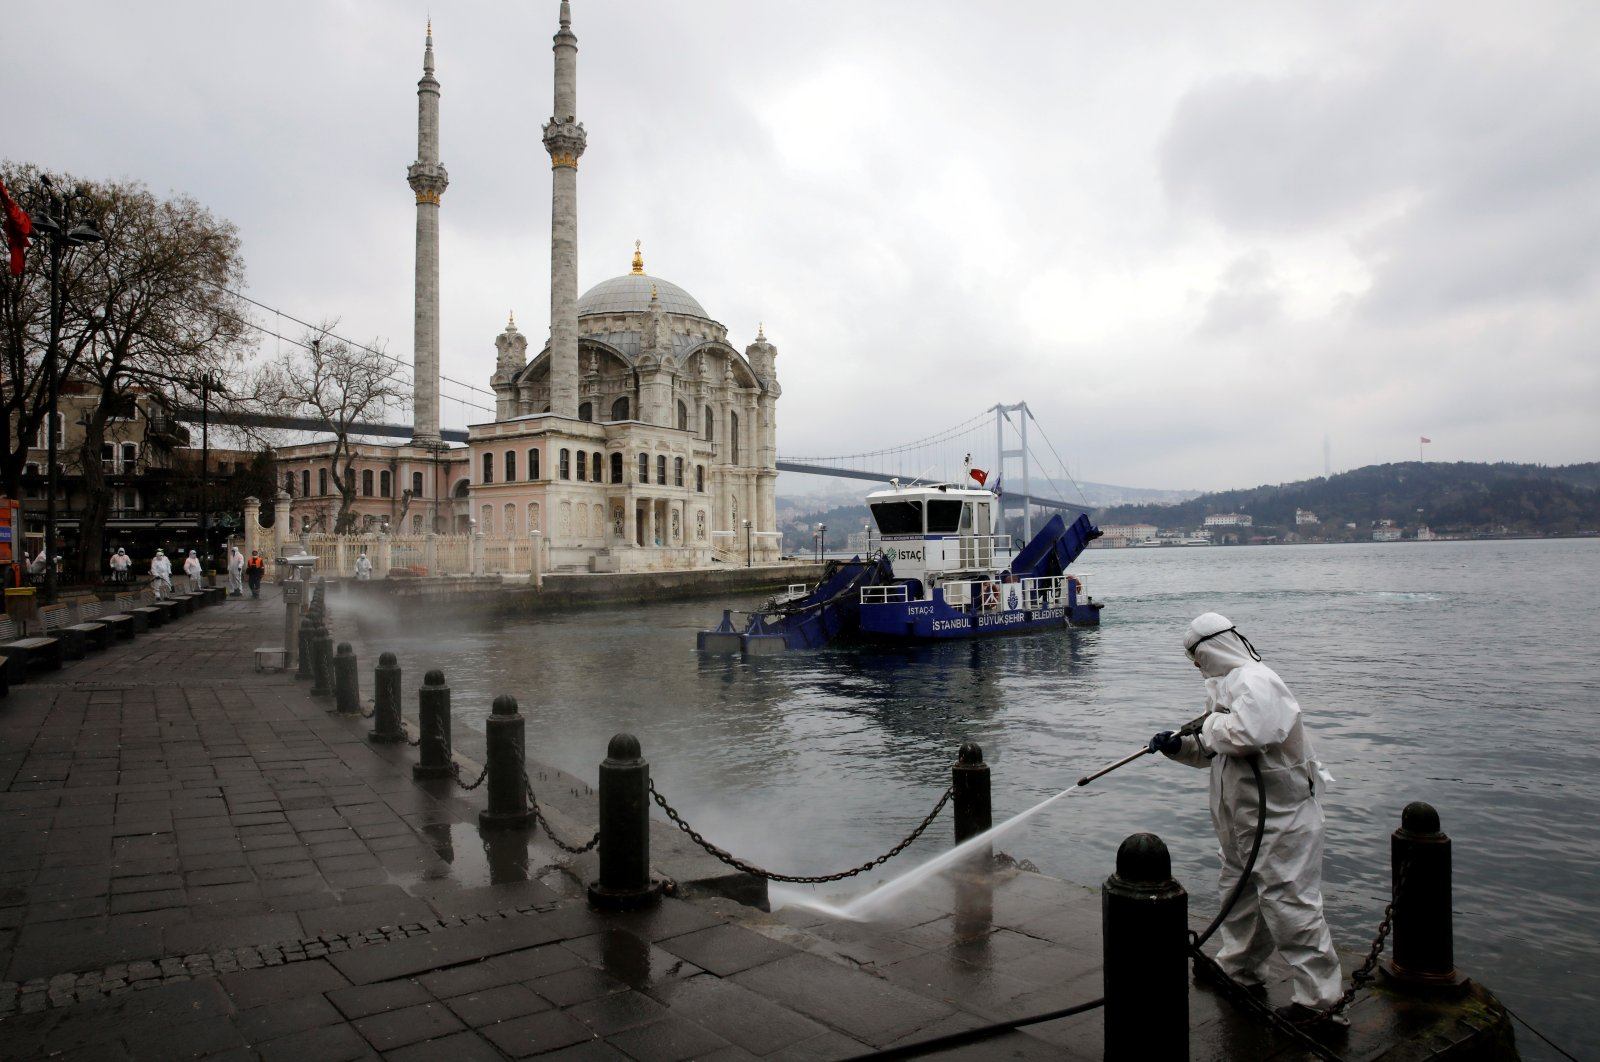 A worker sprays disinfectant outside Ortakoy Mosque, to prevent the spread of the new coronavirus disease (COVID-19), in Istanbul, Turkey, March 23, 2020. (Reuters Photo)